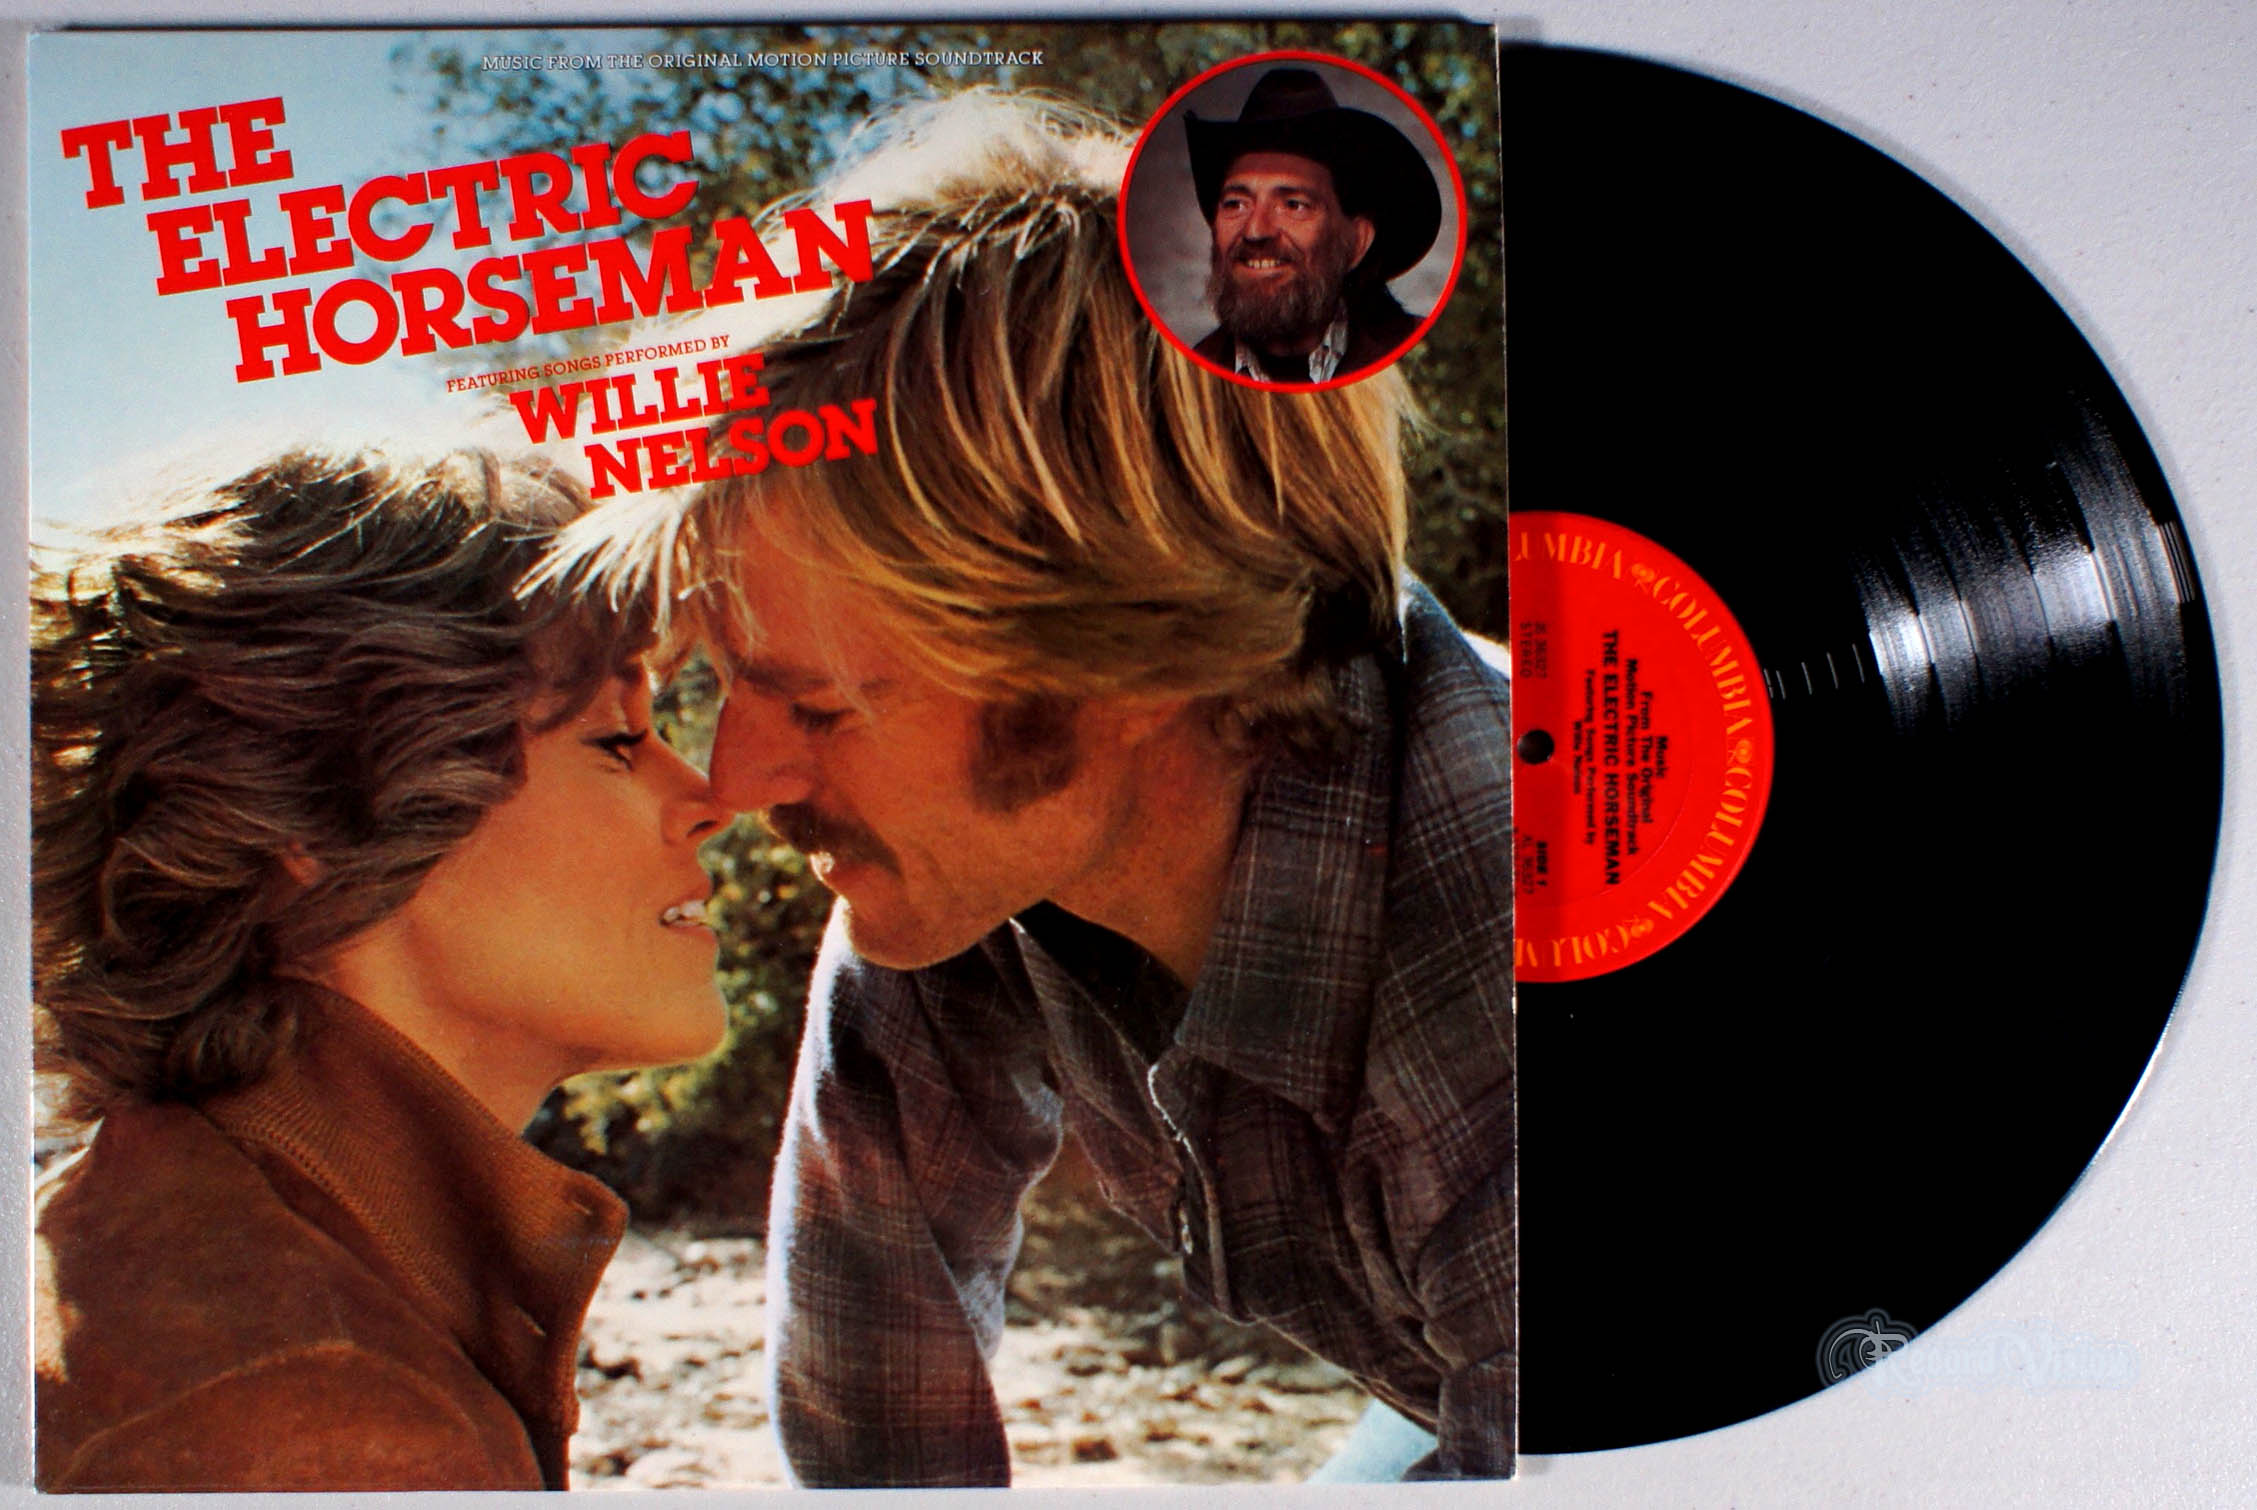 WILLIE NELSON - The Electric Horseman - LP